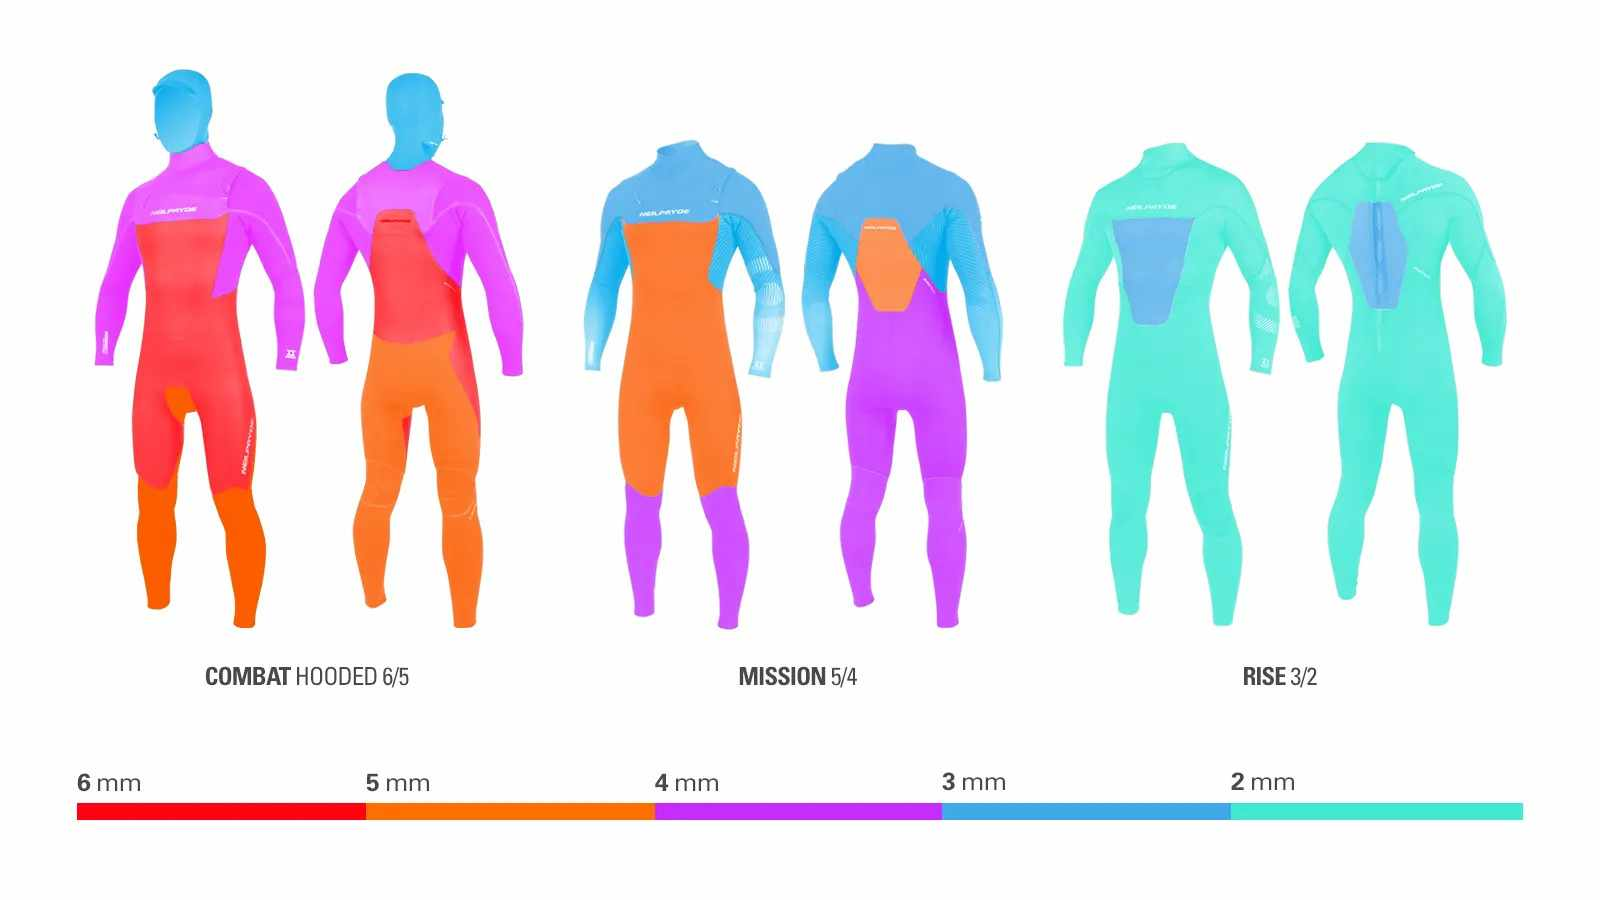 Neil Pryde wetsuit thickness guide